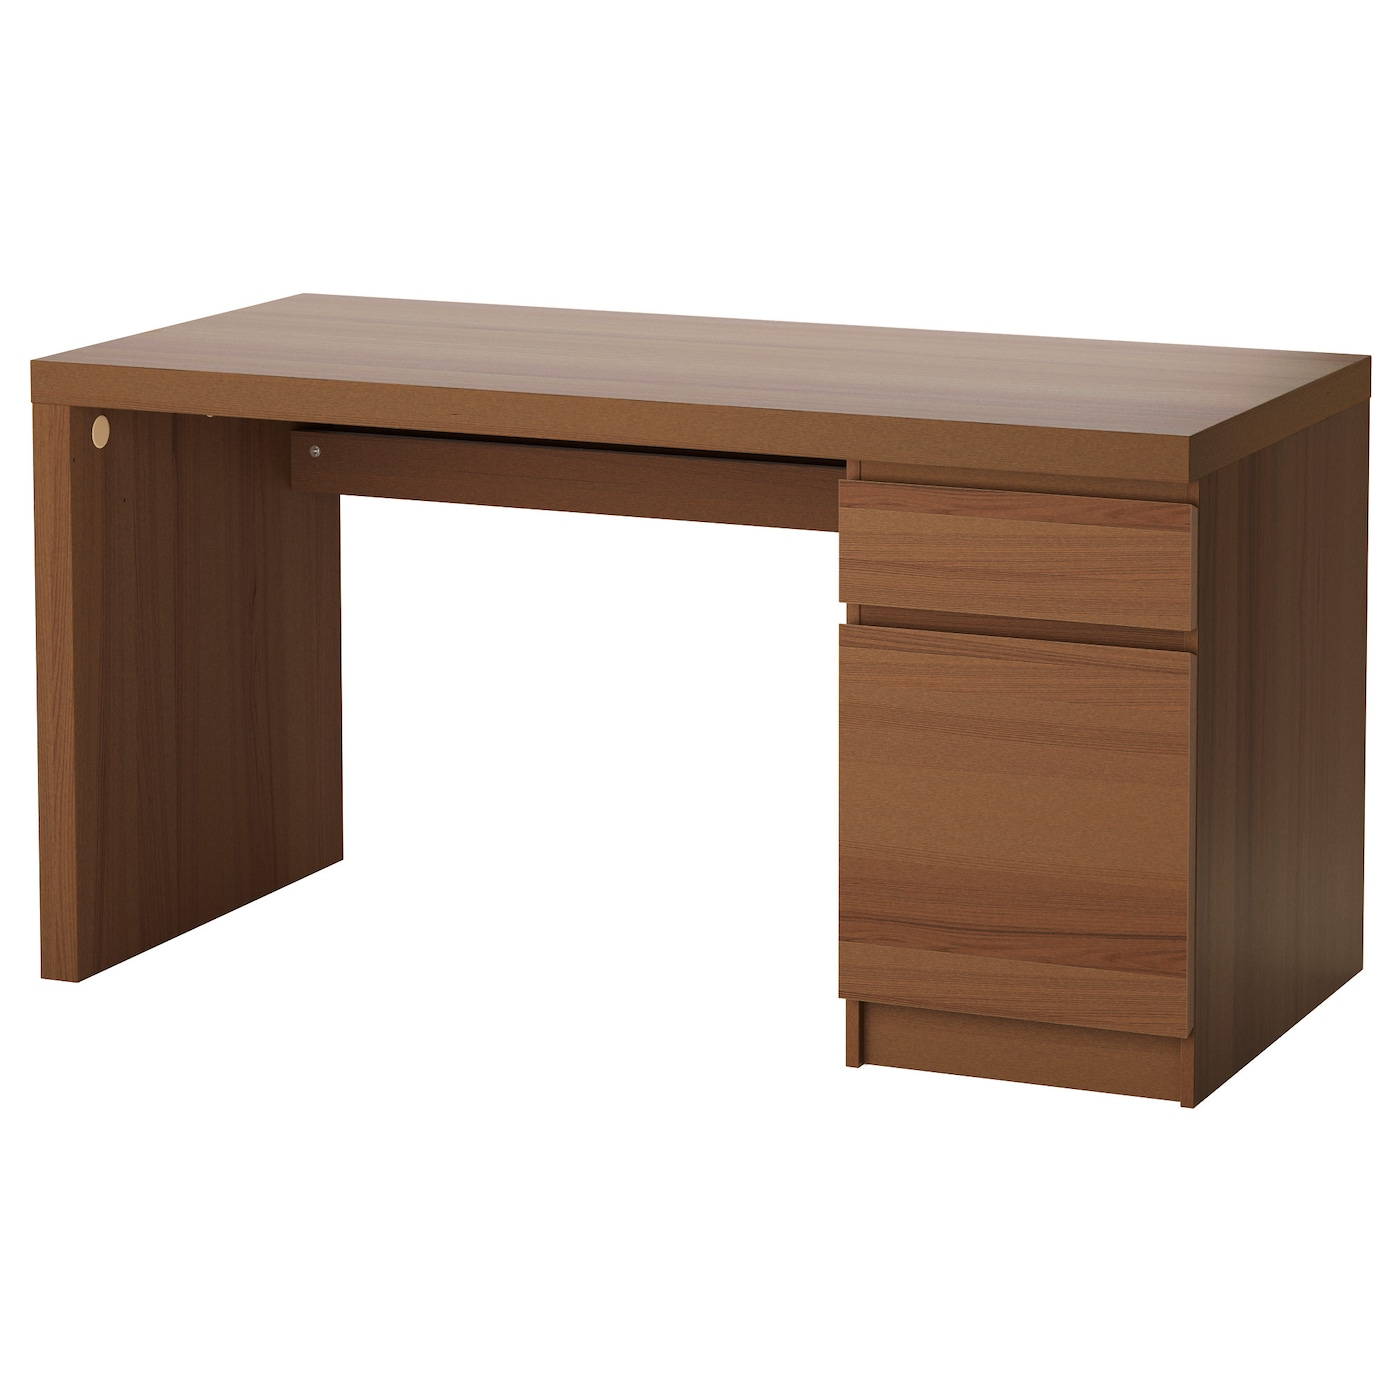 Ikea Kitchen Desk: MALM Desk Brown Stained Ash Veneer 140 X 65 Cm